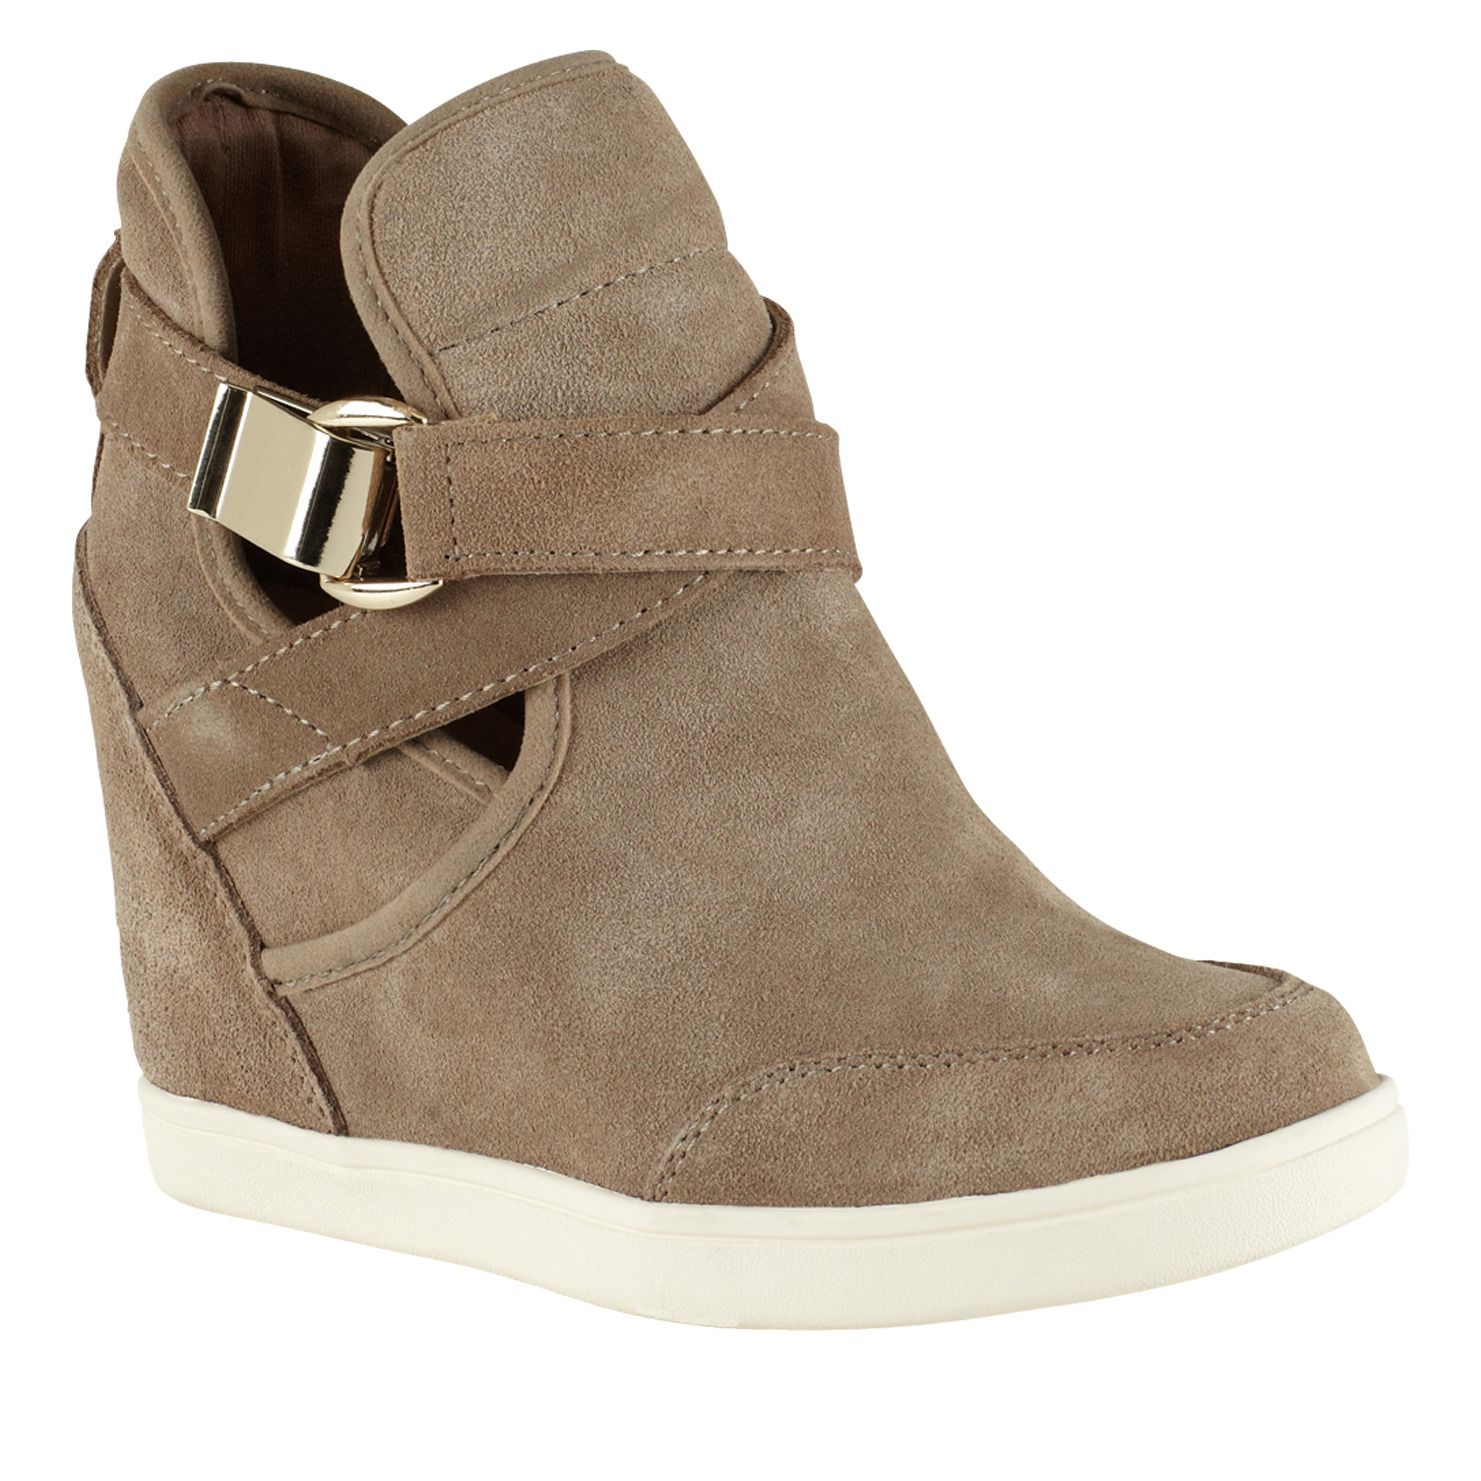 Add some lift to your sneaks with VALAIRE - women s sneakers shoes for sale  at ALDO Shoes.